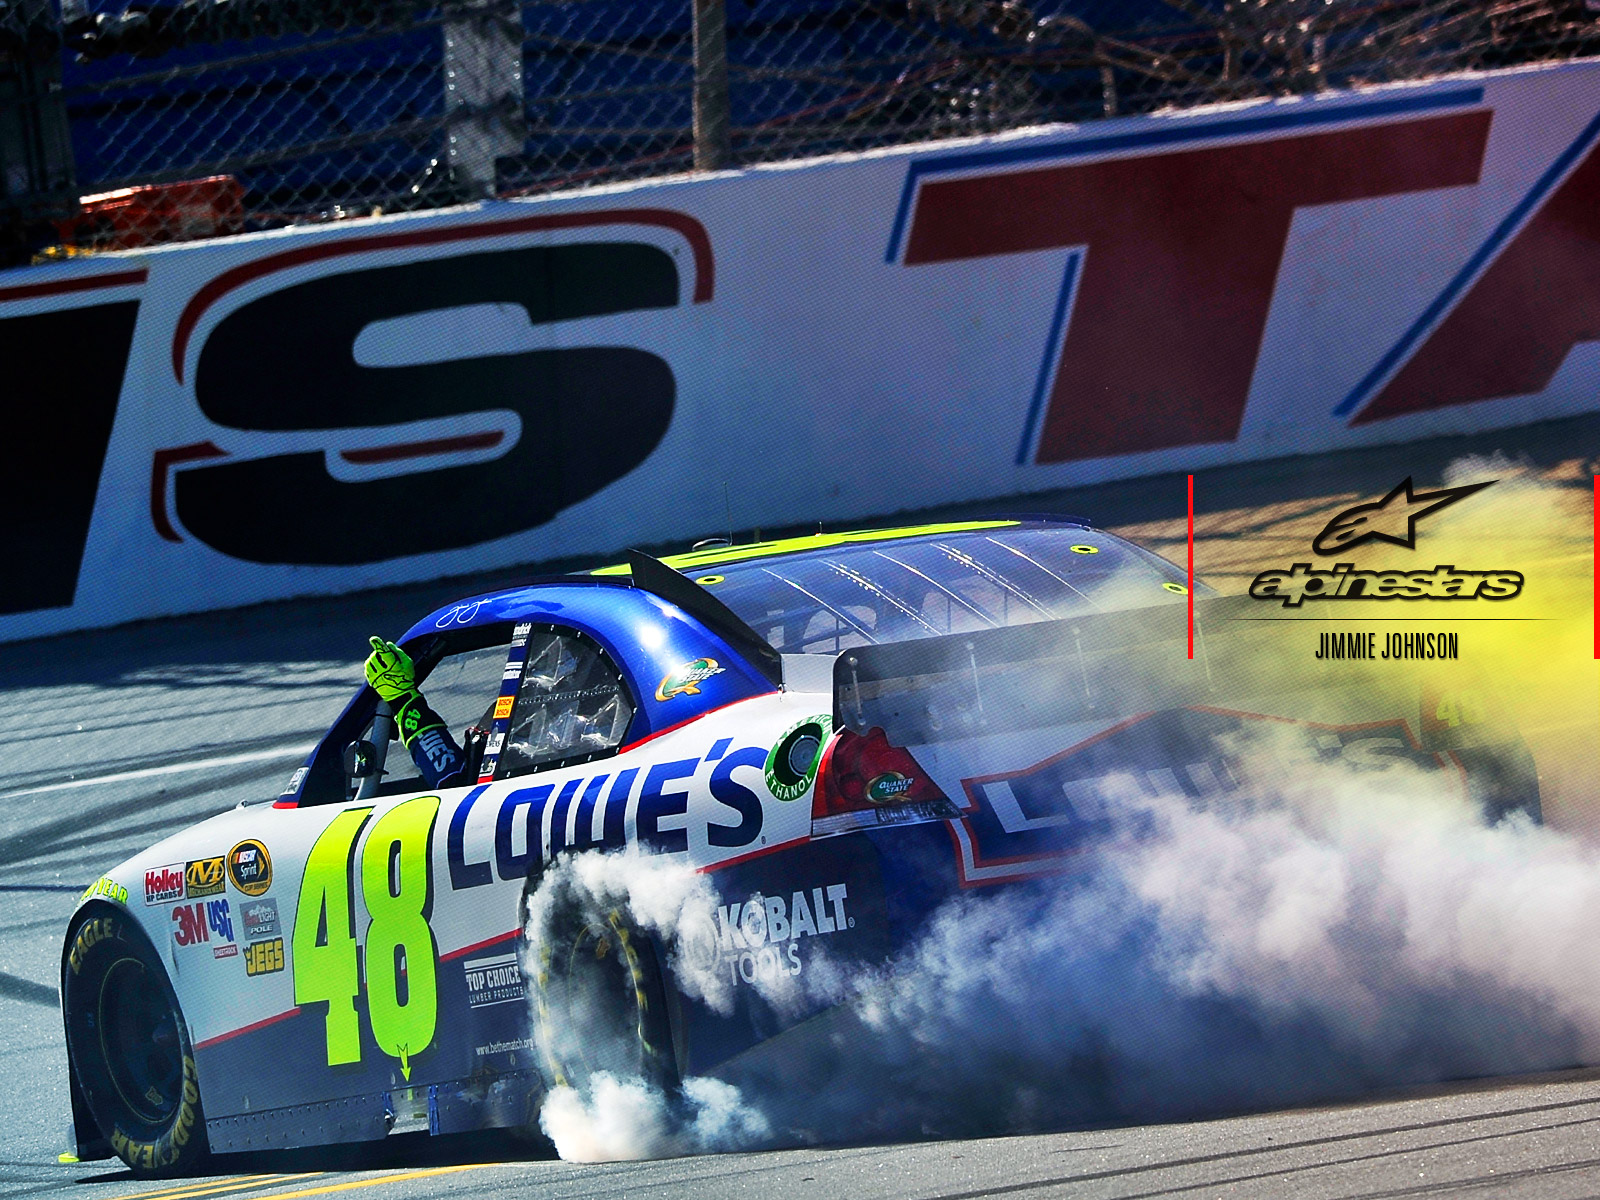 Wallpapers By Wicked Shadows Jimmie Johnson Nascar Unites: Free Jimmie Johnson Wallpaper